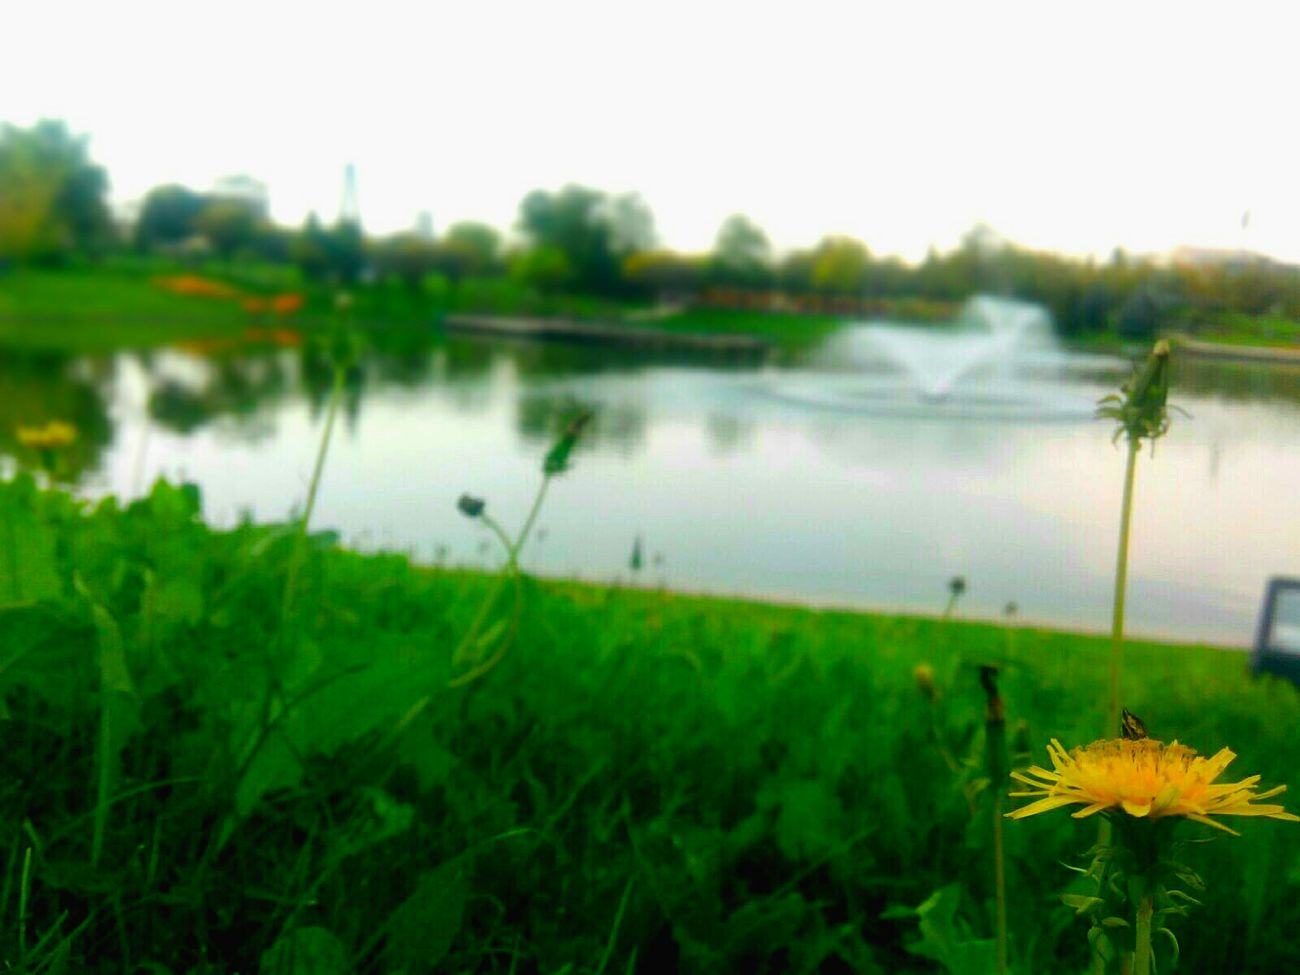 Günaydın Karahindiba TurkiyekareleriCheck This Out Taking Photos Hello World Yellow Flower Walking Around Goodmorning :) Taraxacum Plantography Bokeh Photography Bokeh Bokeheffect Bokehphotography Bokehphoto Focus Object Focus On Taraxacum Officinale Sarı Sarı çiçek Ankara/turkey Flower Photograph Çiçekler Güzeldir 🎈🎈🎀💕 Tazelik Flower Photography Springtime